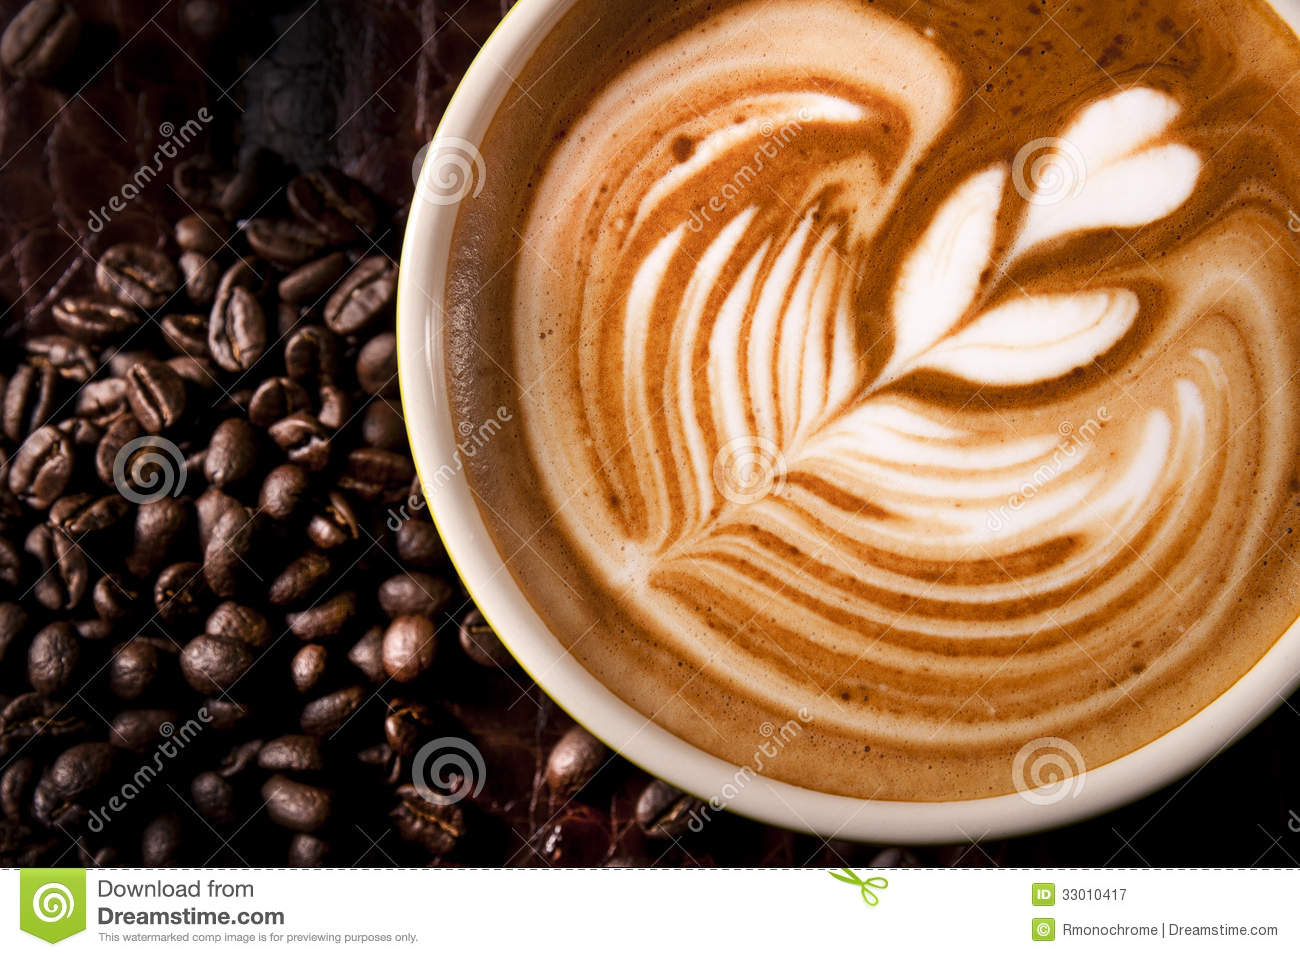 A Cup Of Coffee With Latte Art Stock Image Image Of Machine Making 33010417